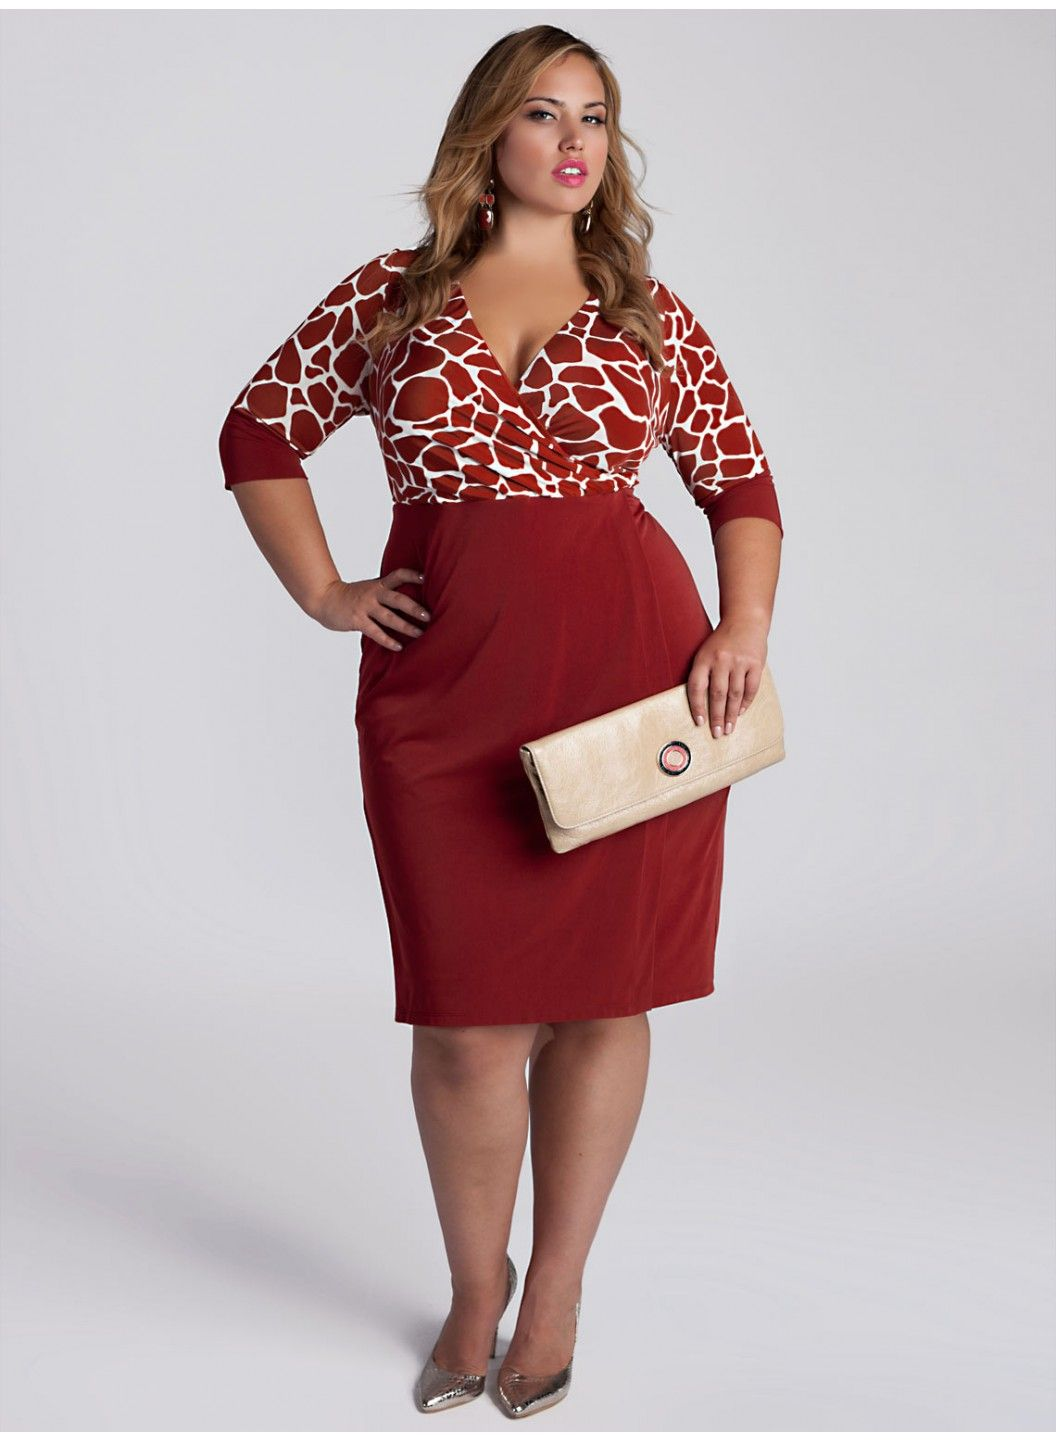 90071a47d38 Curvy Woman Red and White Dress and Silver High Heels